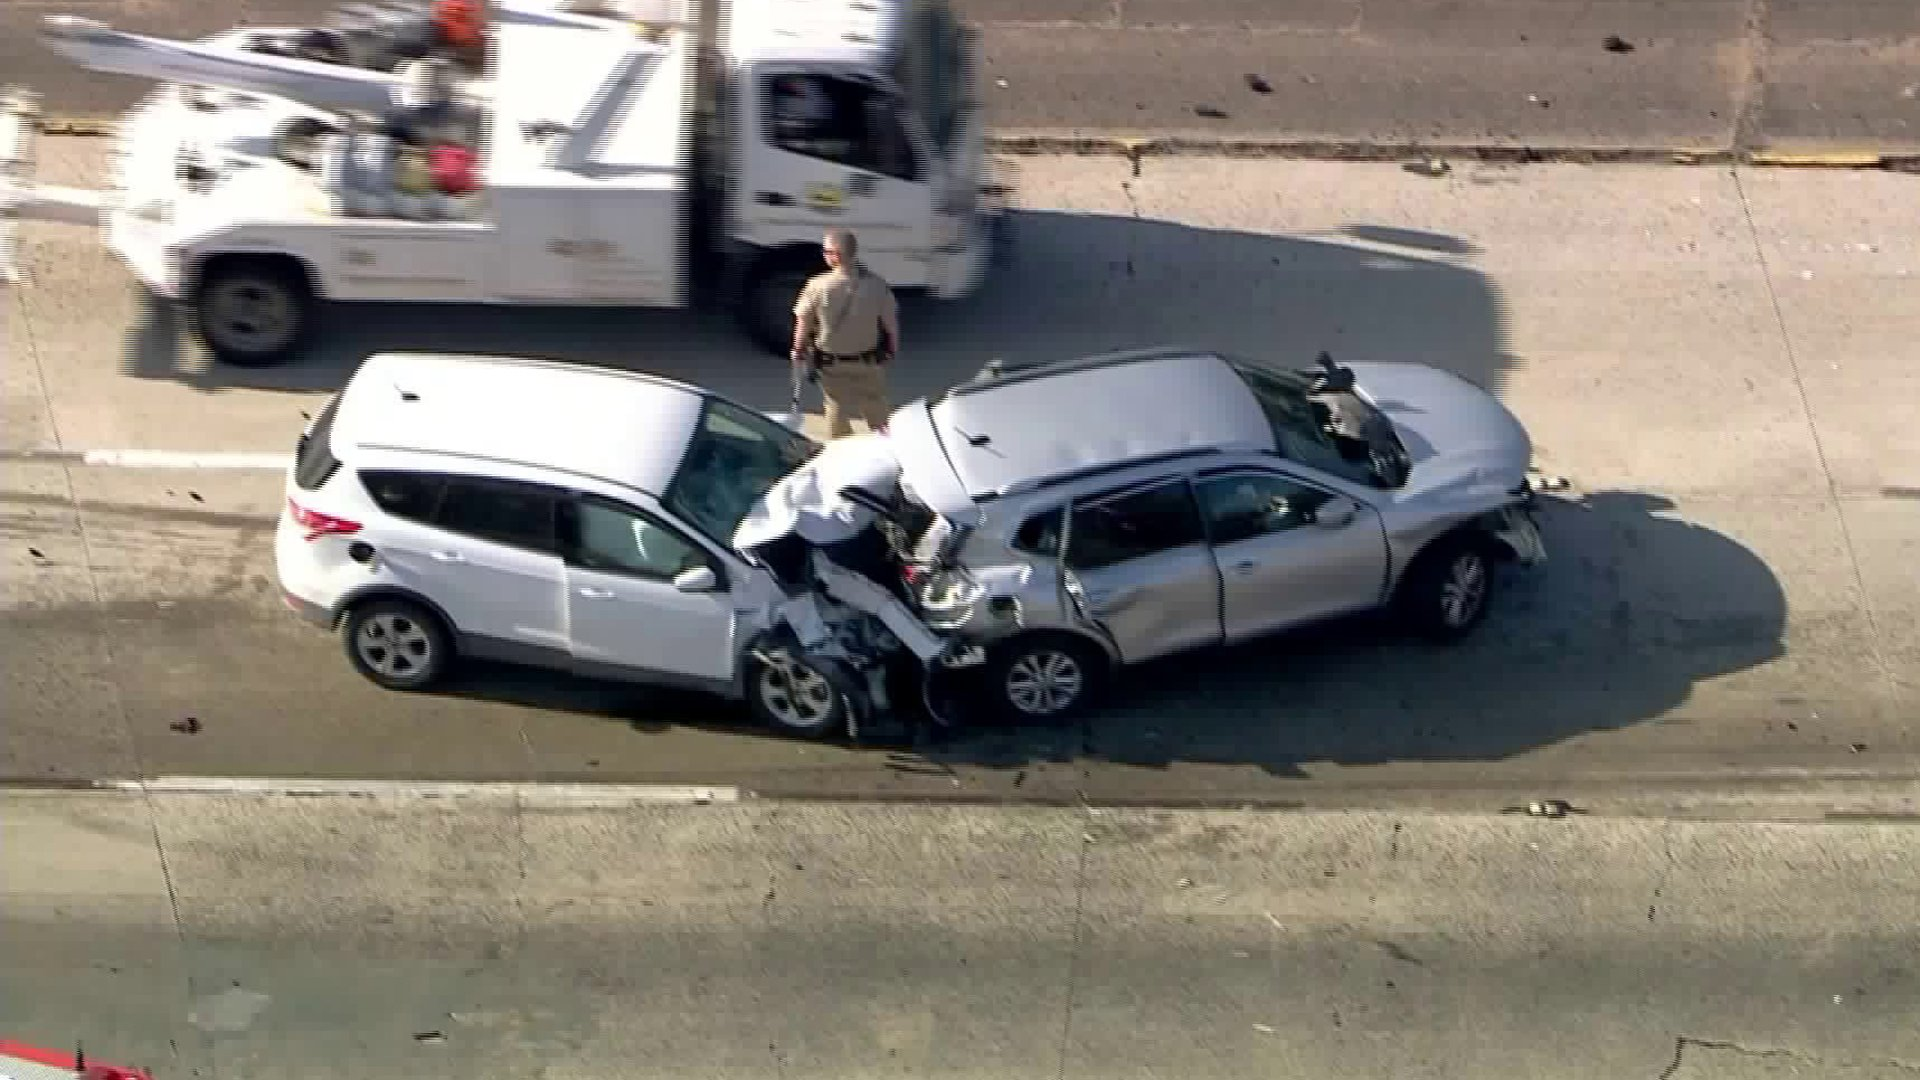 Two SUVs were involved in a crash on the 210 Freeway in Sylmar on Feb. 14, 2020. (Credit: KTLA)